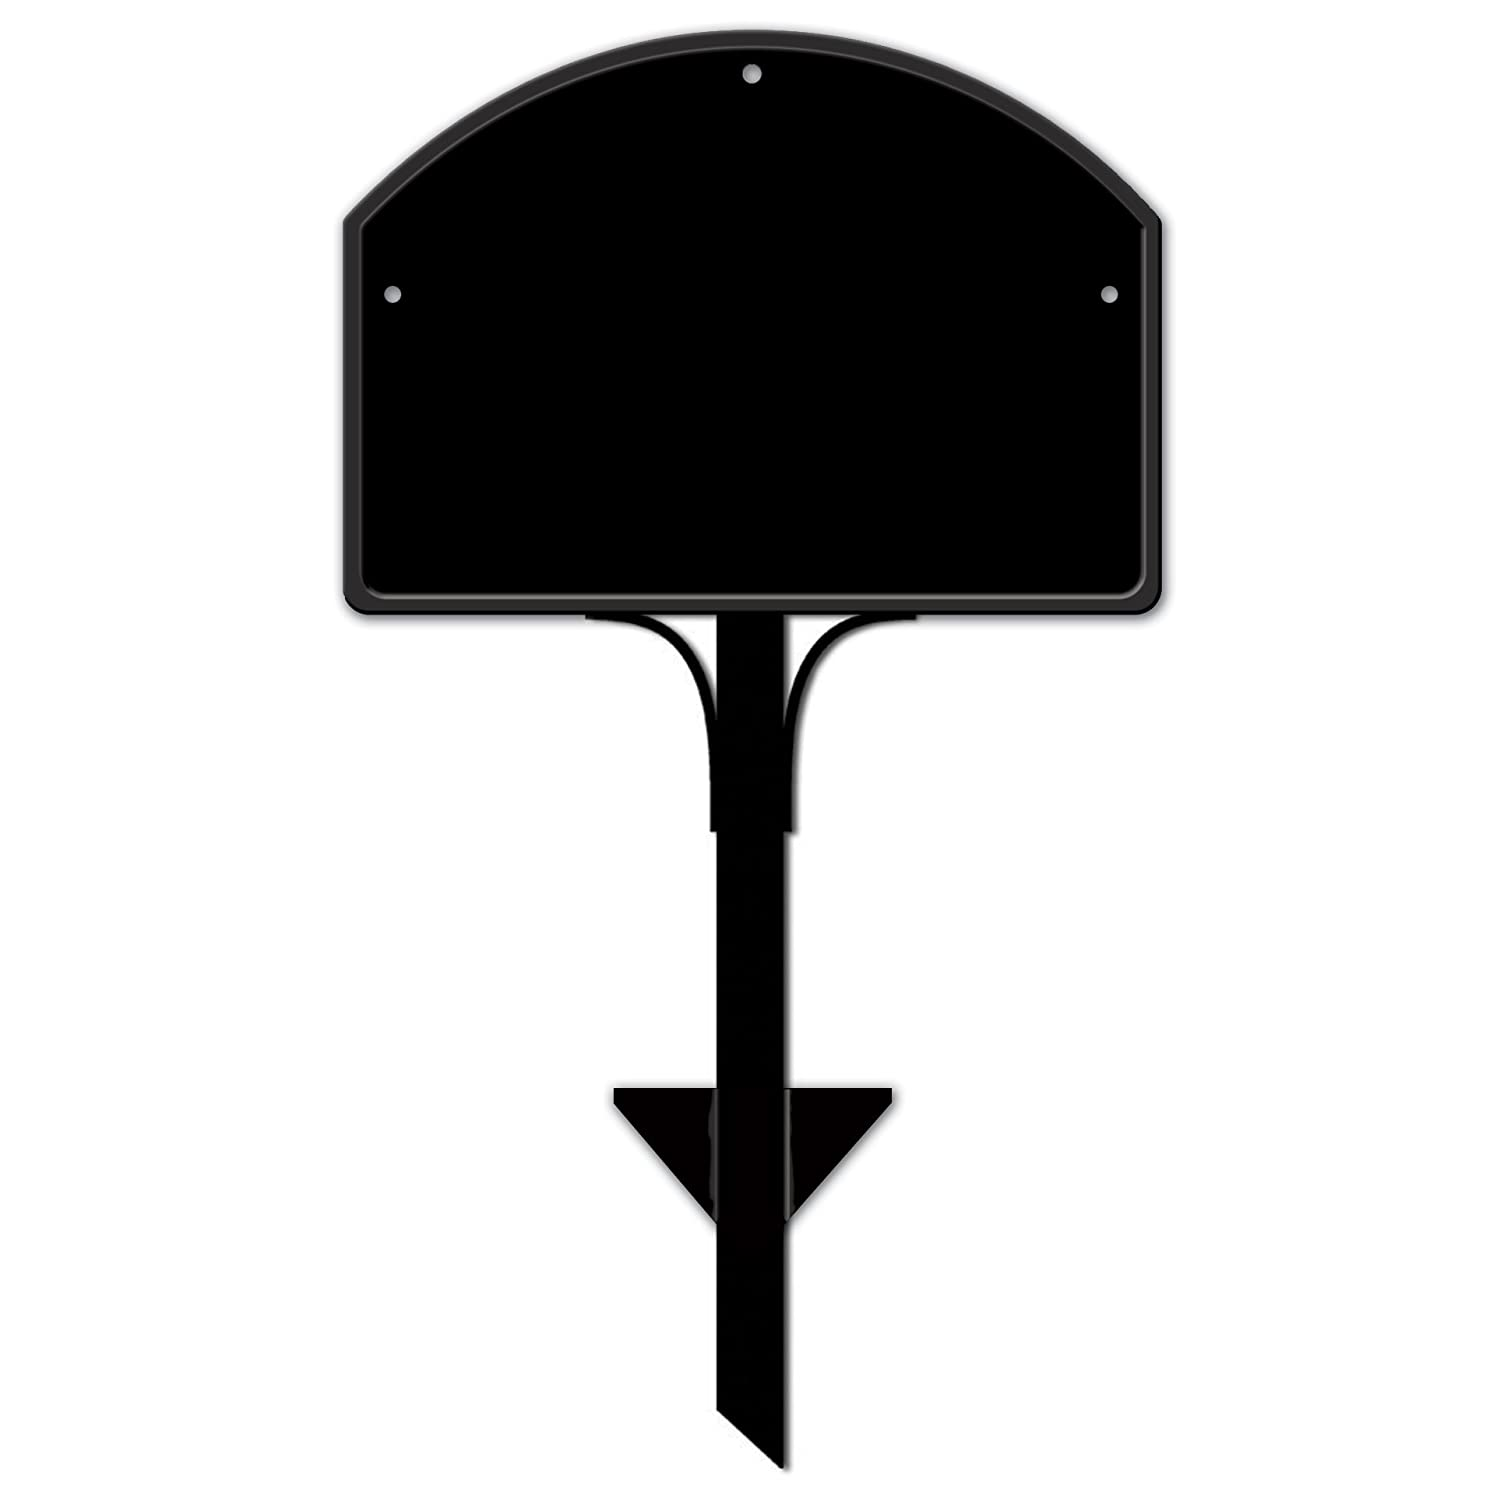 Yard Stake for Yard DeSigns,Black,14 in. w x 25 in. h.